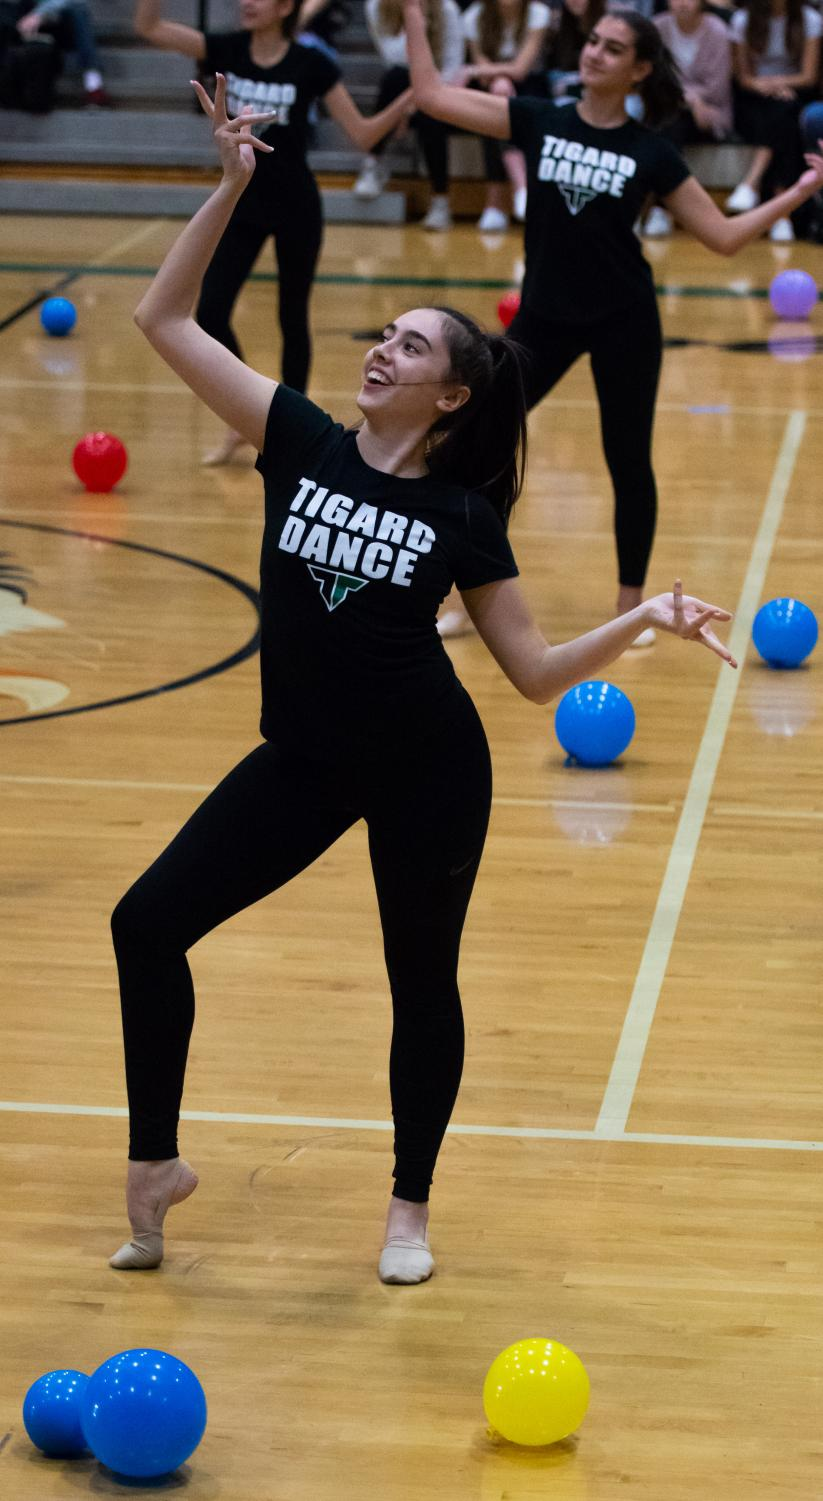 Senior, captain Abby Mullins performs with Tigerettes during the homecoming assembly. The assembly included some games, the Tigerettes performance and introduced the homecoming court to the student body.